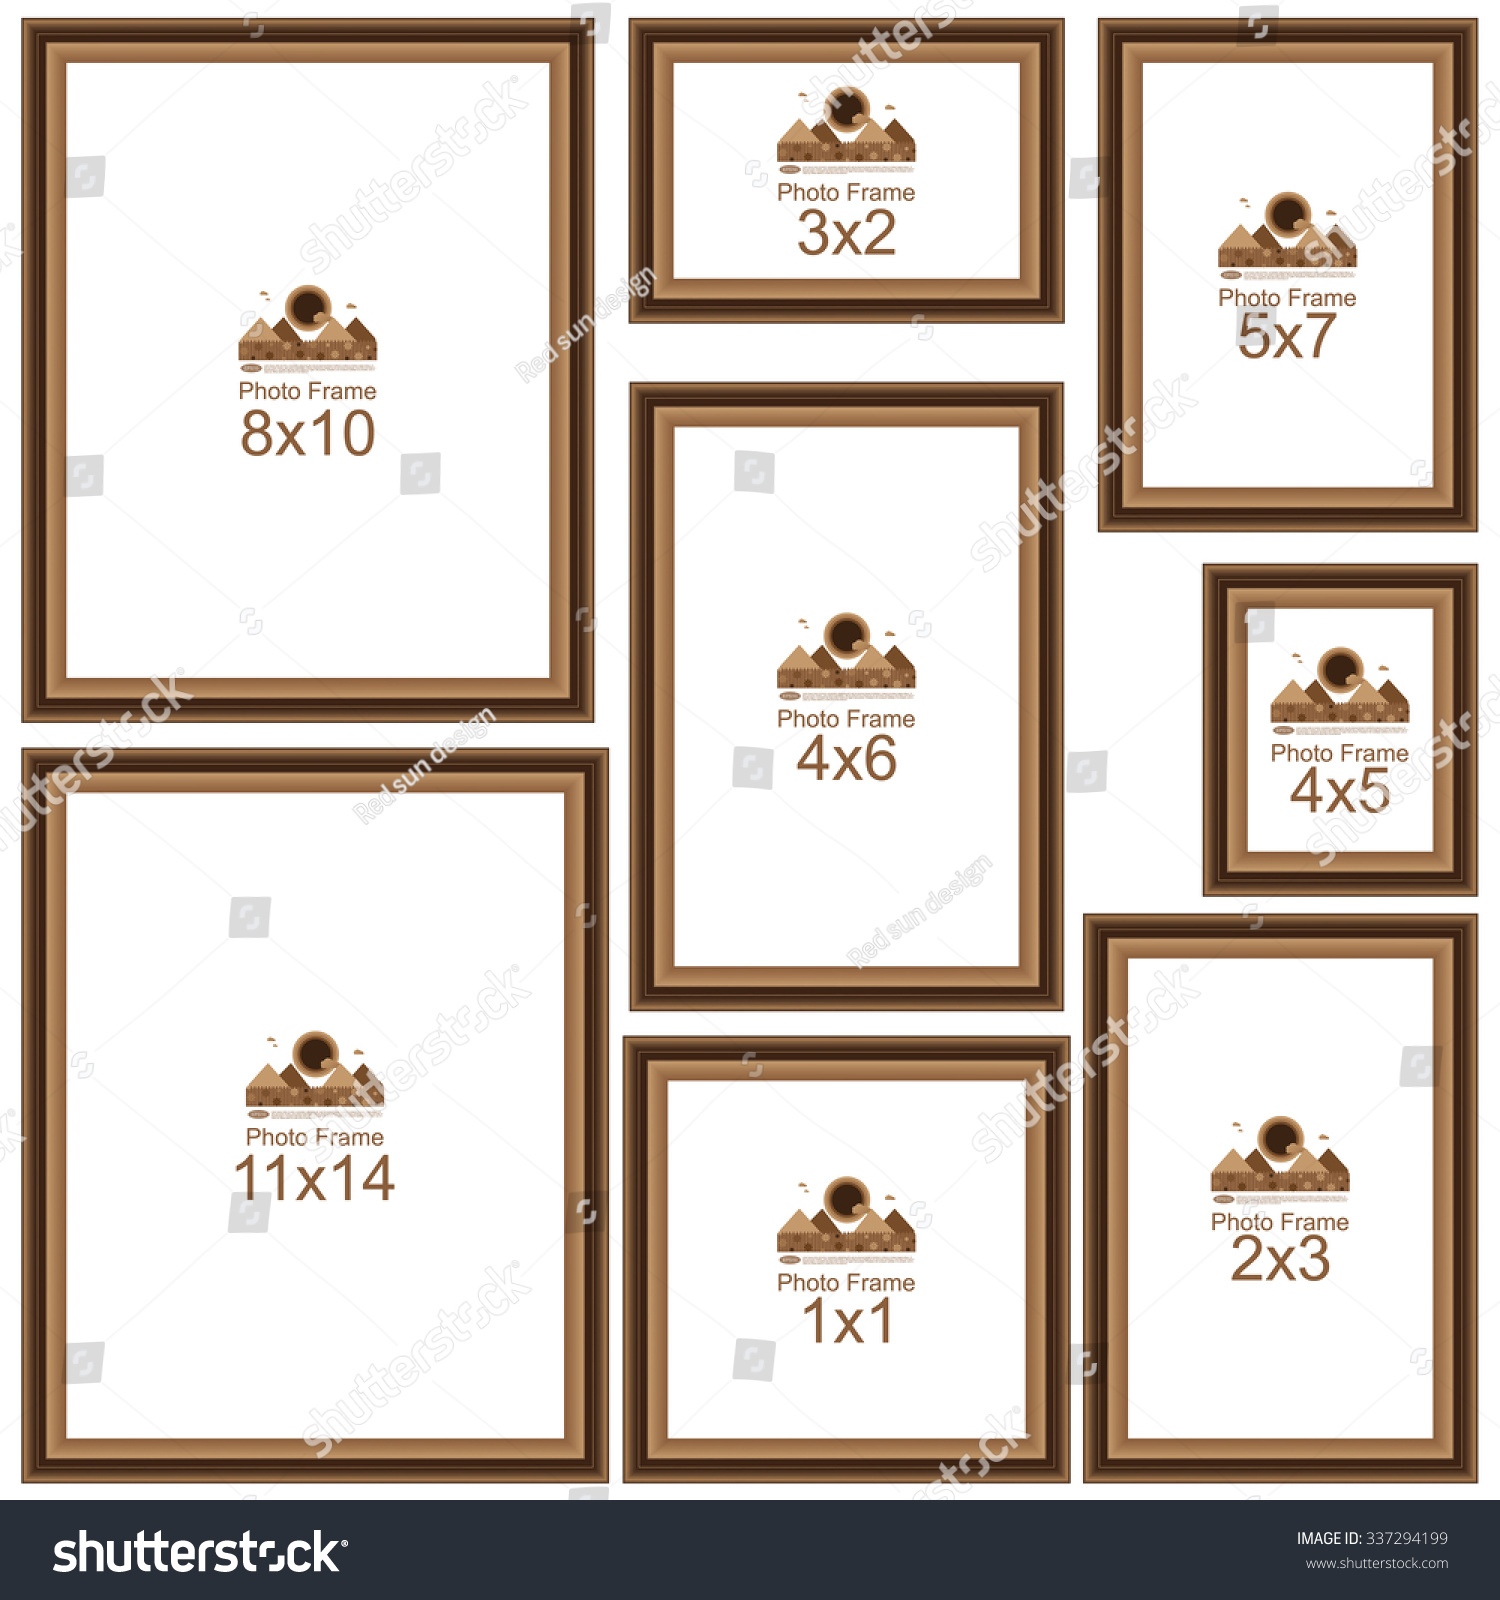 Popular picture frame sizes wood border stock vector 337294199 popular picture frame sizes wood border frame for picture or text border for jeuxipadfo Gallery